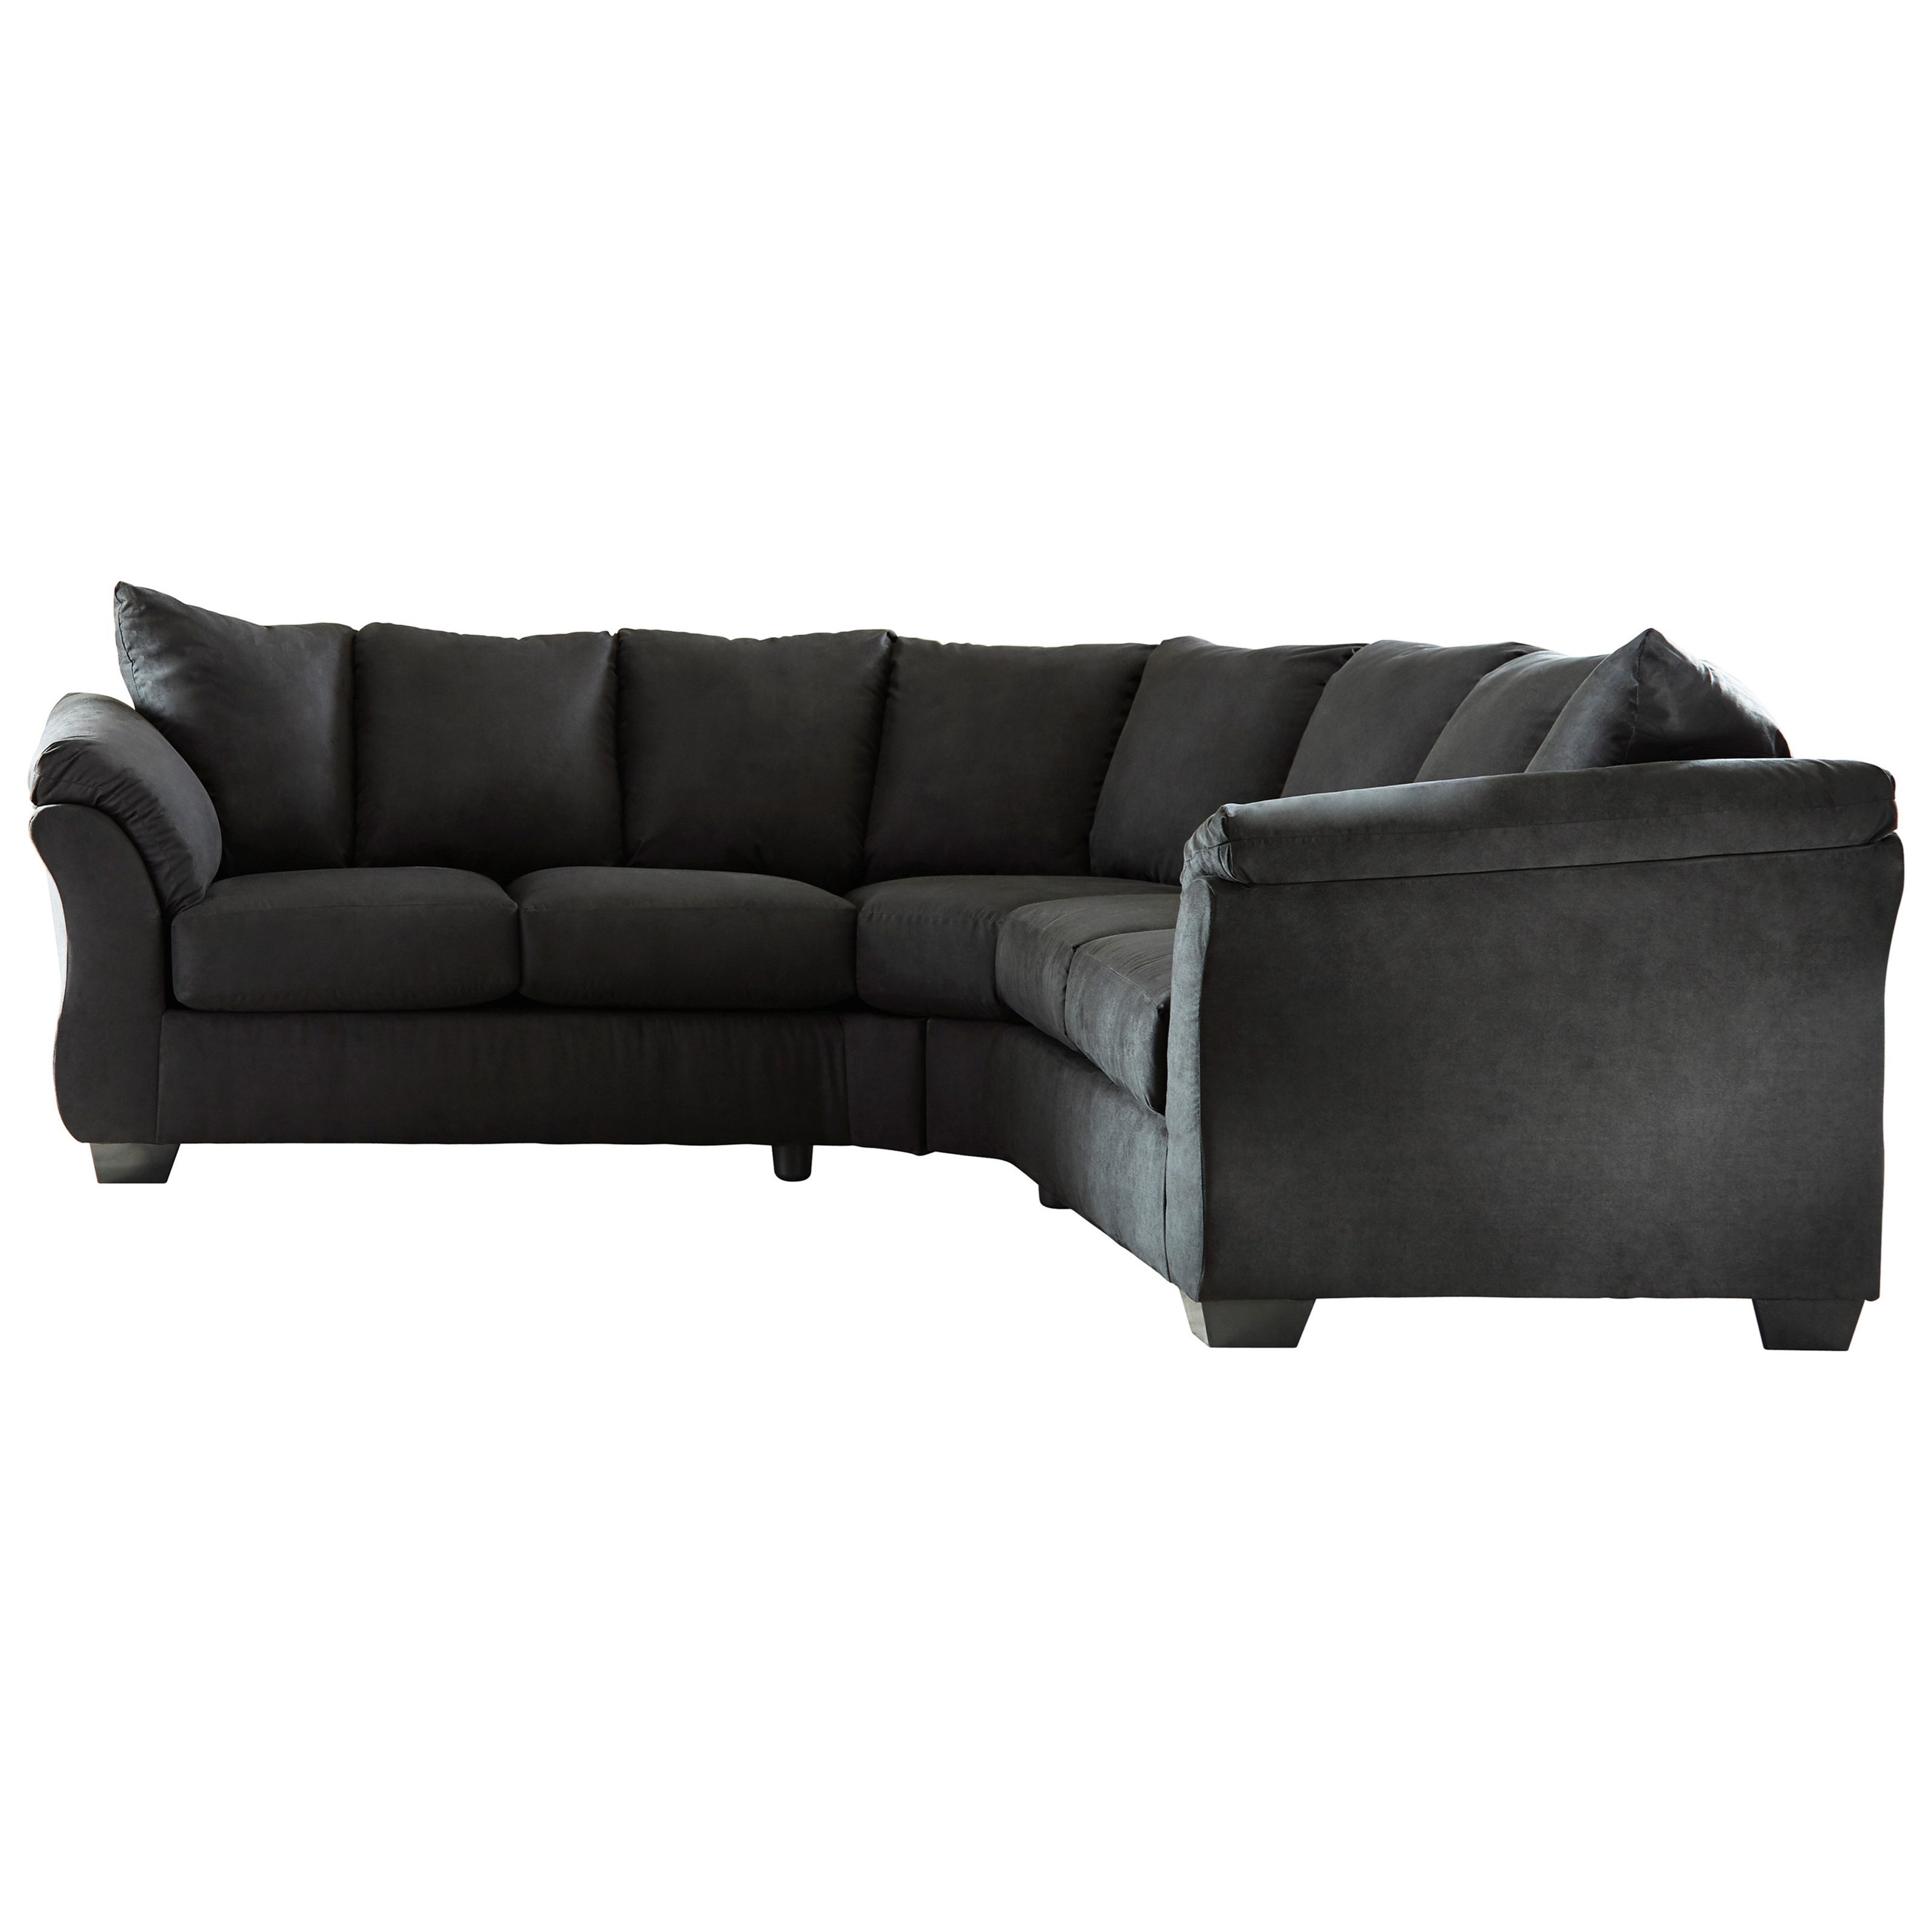 Darcy - Black Contemporary Sectional Sofa with Sweeping Pillow Arms by  Signature Design by Ashley